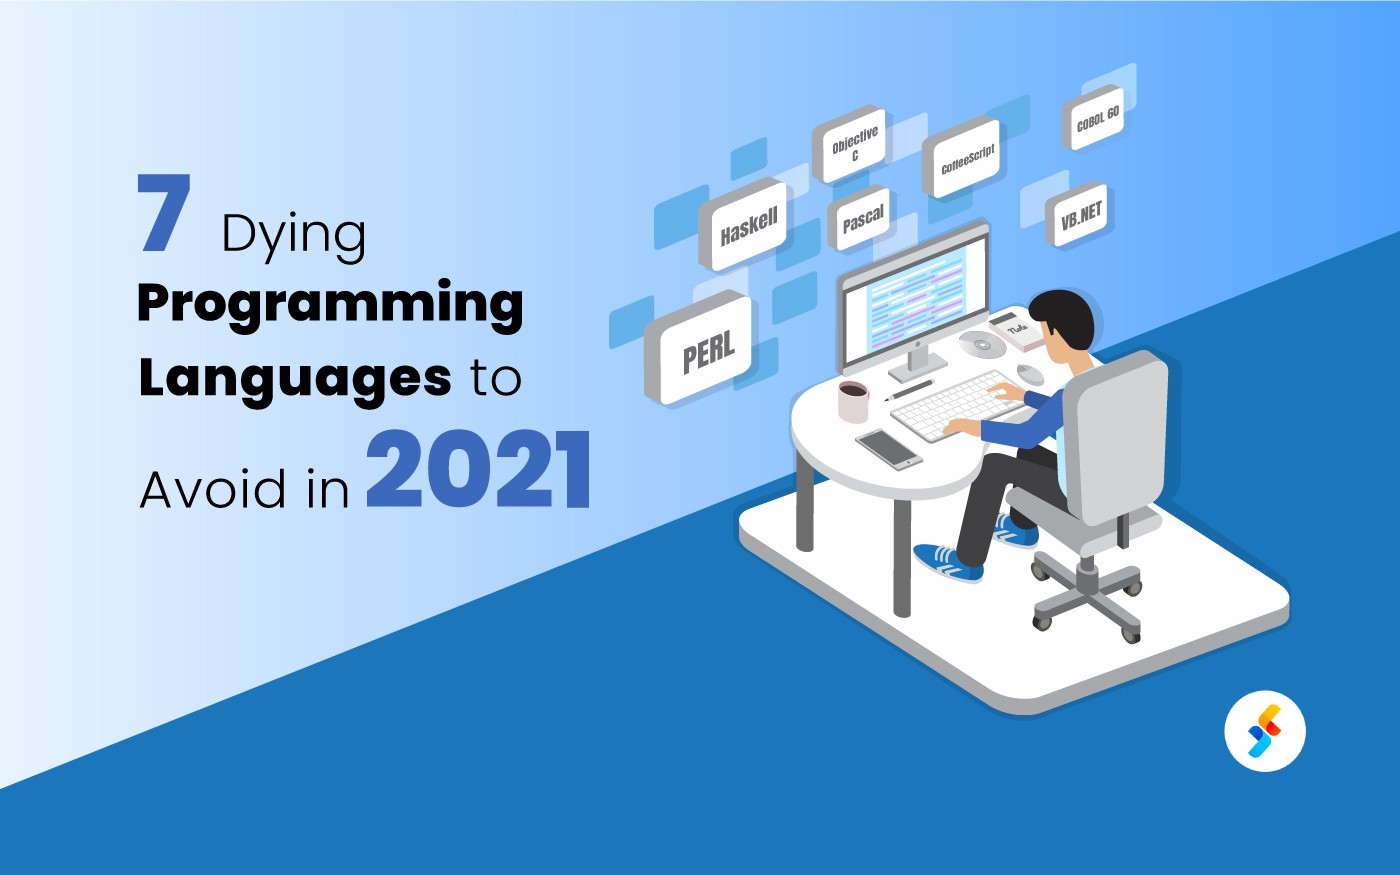 7-Dying-Programming-Languages-to-Avoid-in-2021